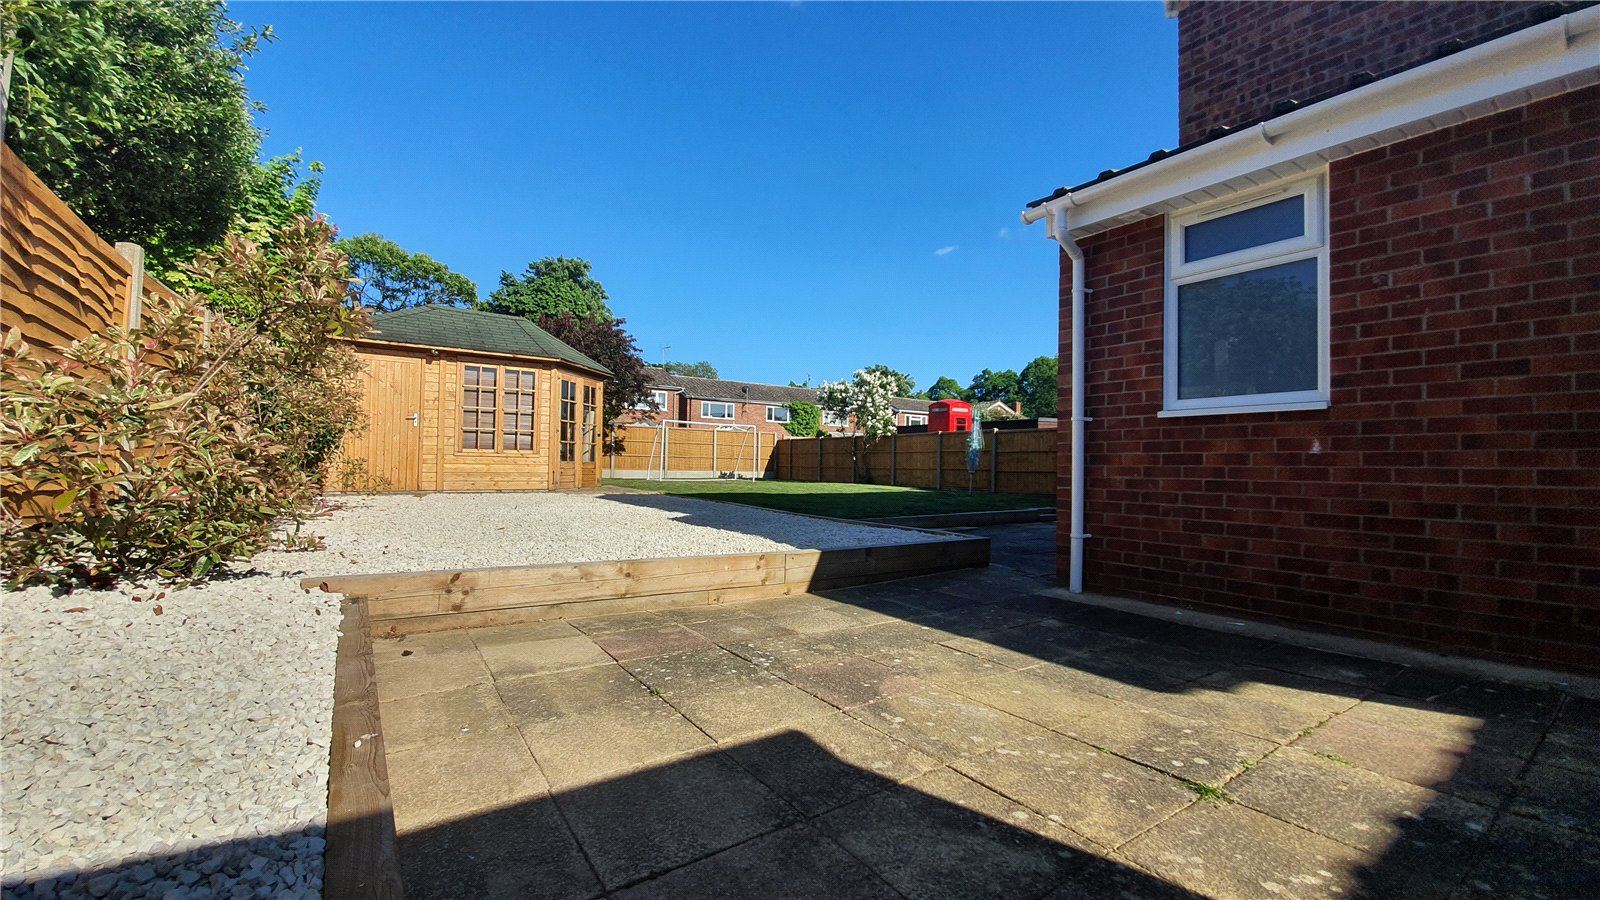 3 bed house for sale in The Sycamores, Little Paxton 6